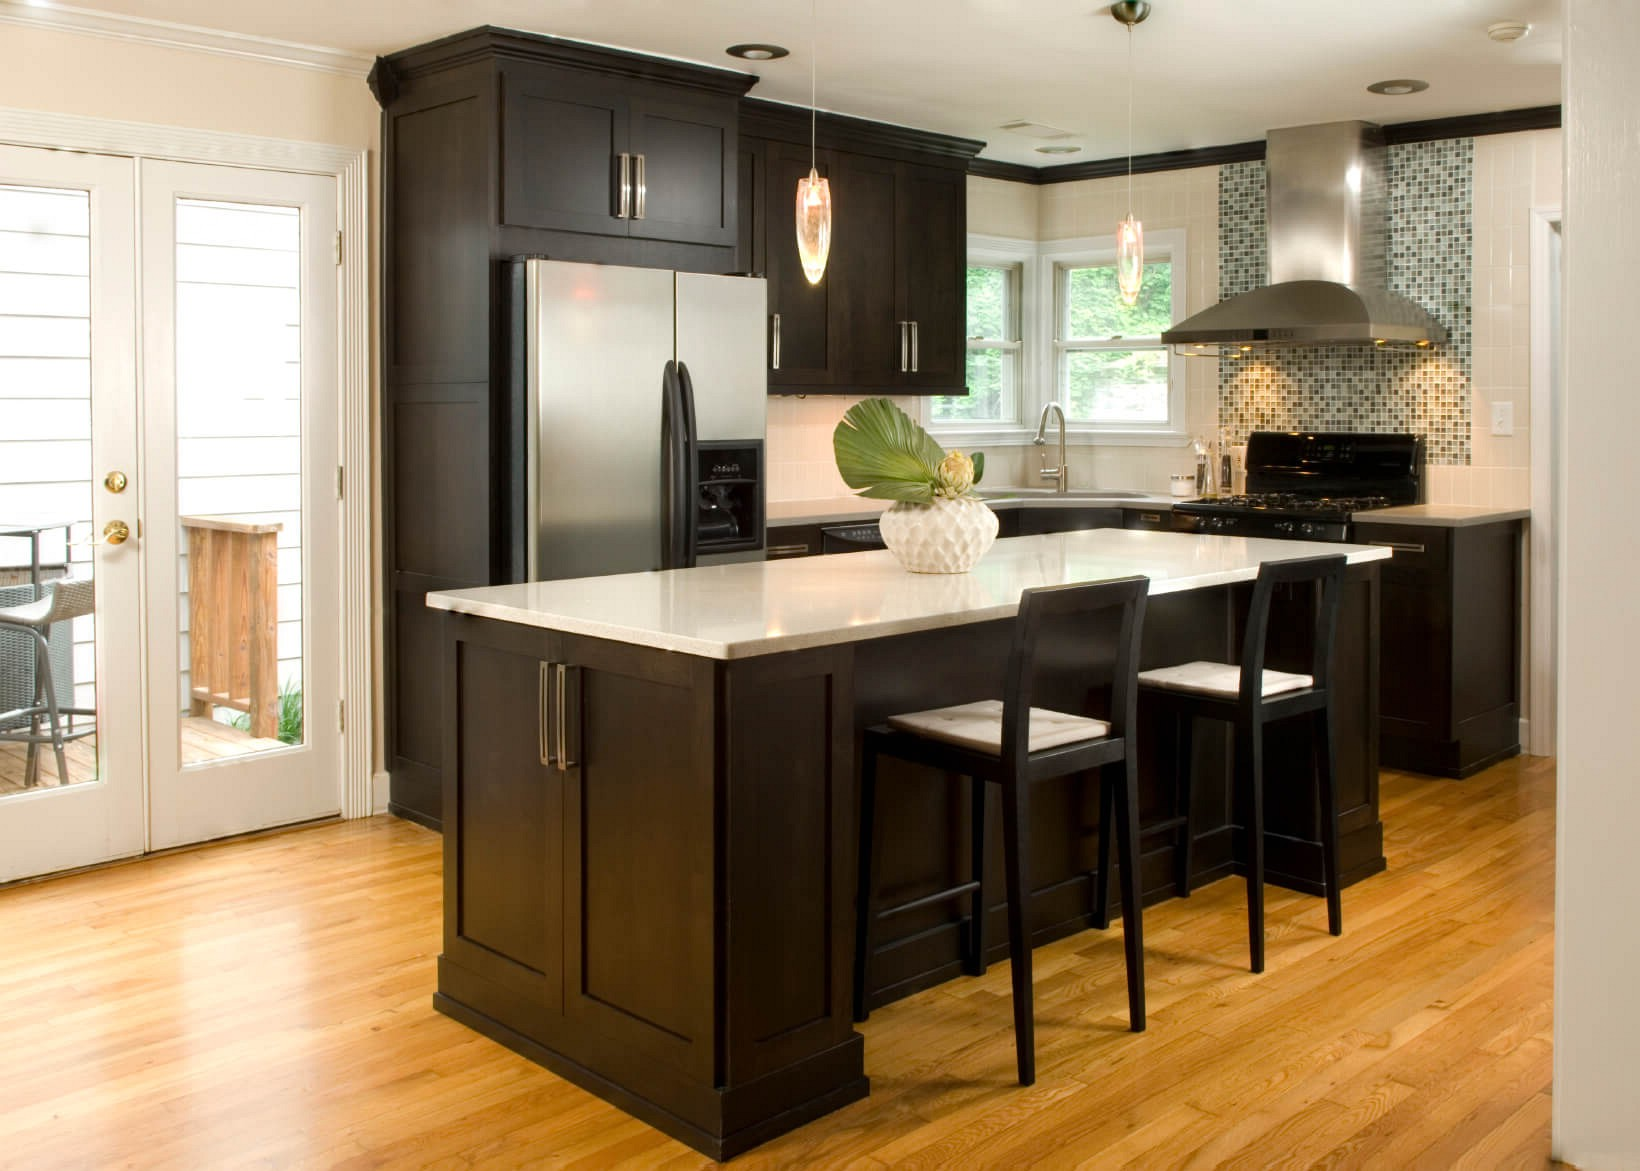 Kitchen design tips for dark kitchen cabinets for Kitchen cabinets with